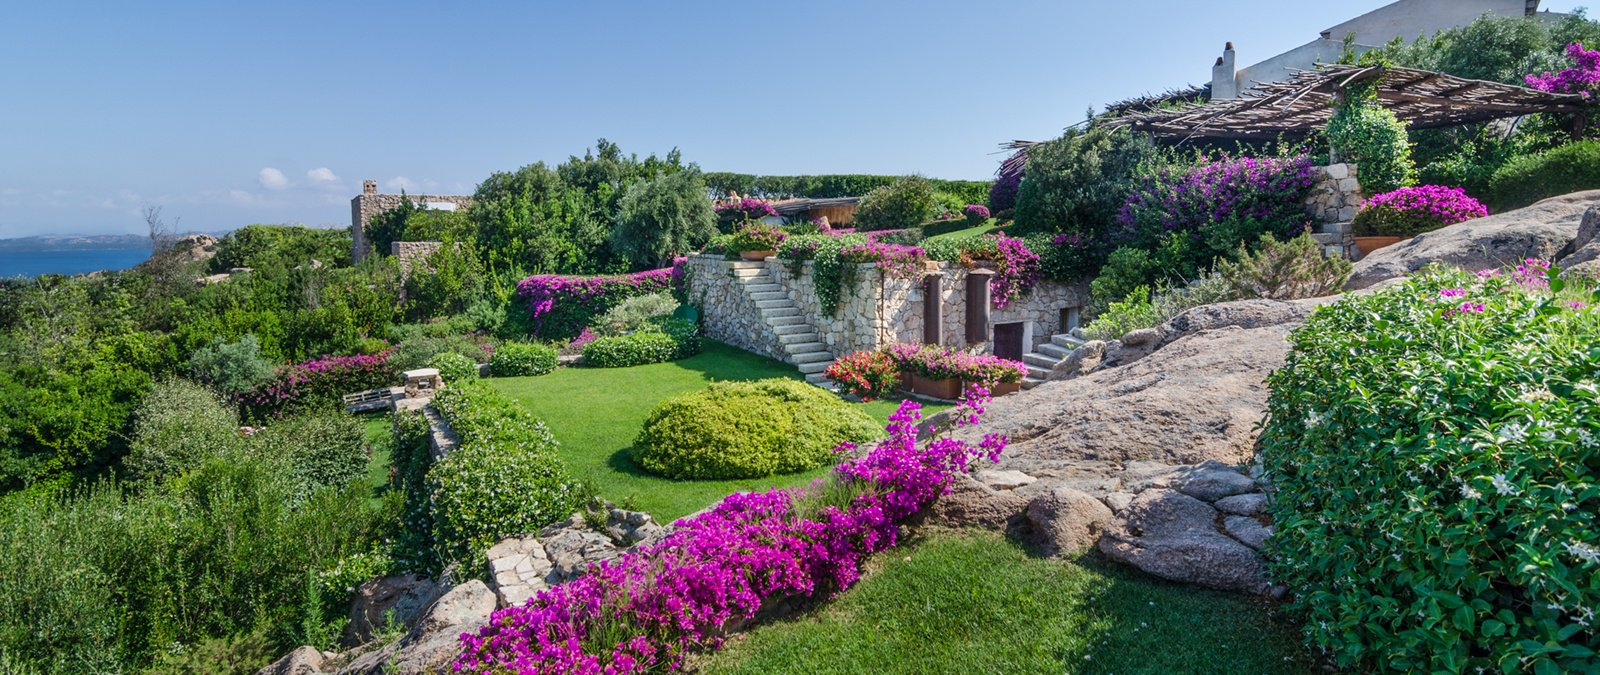 Delightful Luxury Homes To Rent For An Ideal Destination Wedding